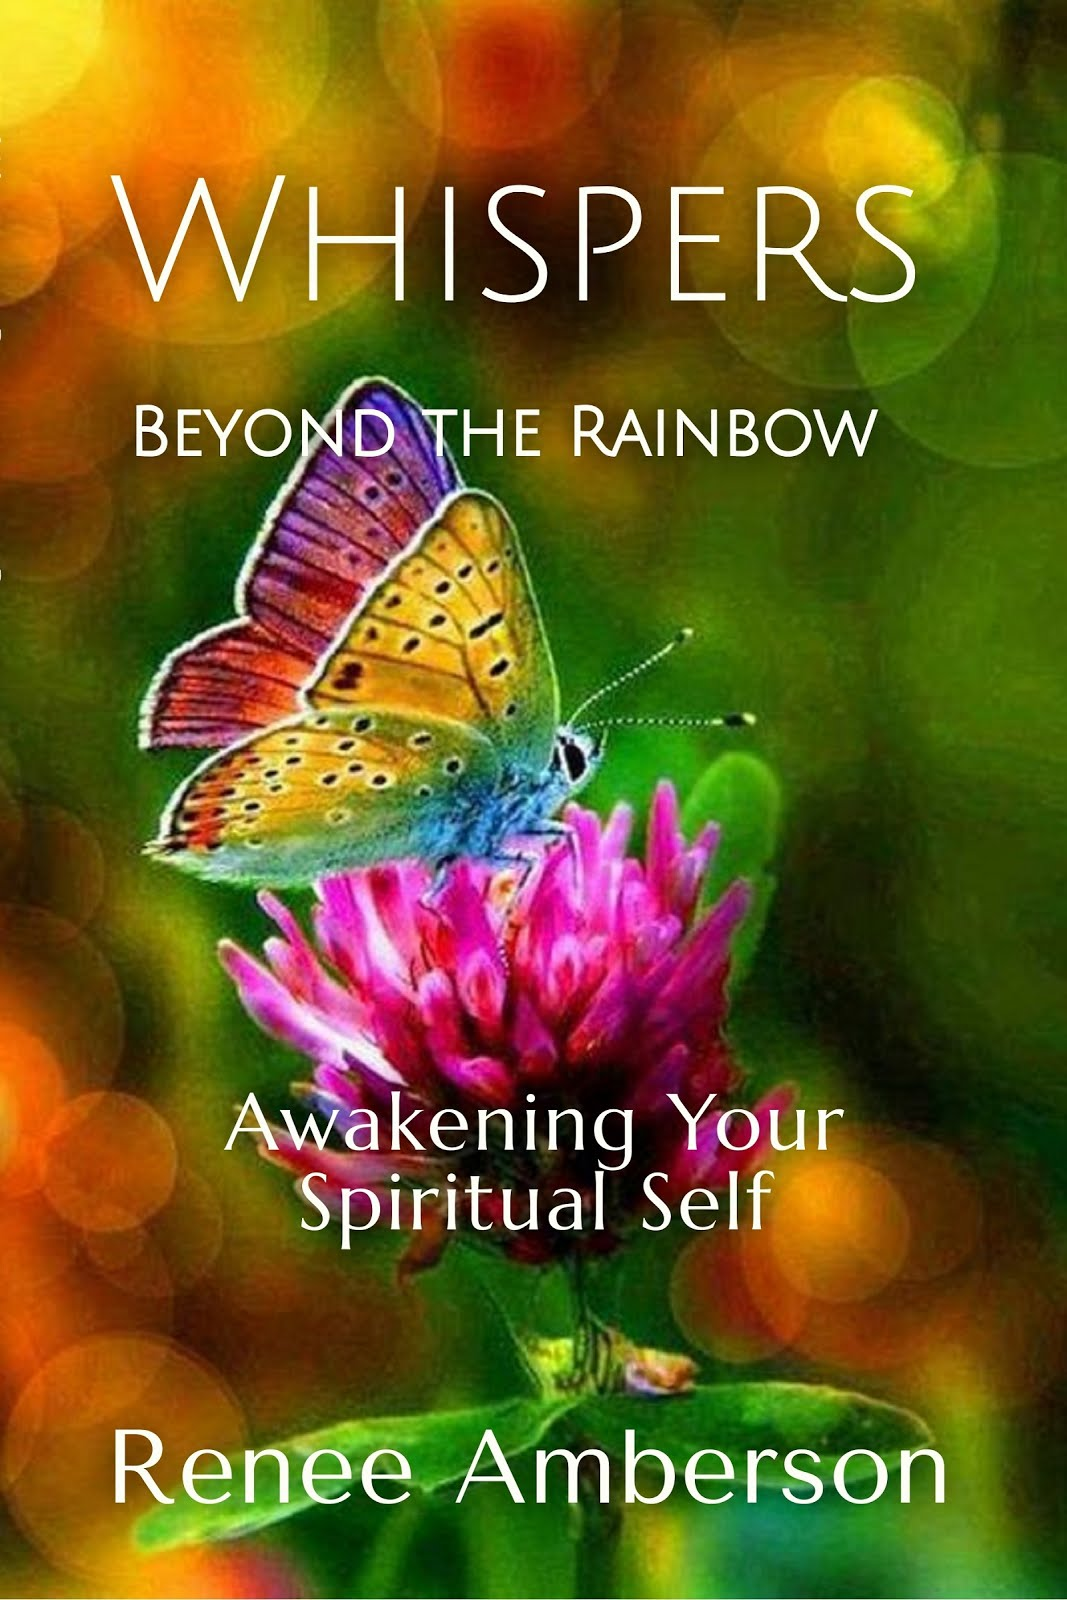 Whispers Beyond the Rainbow